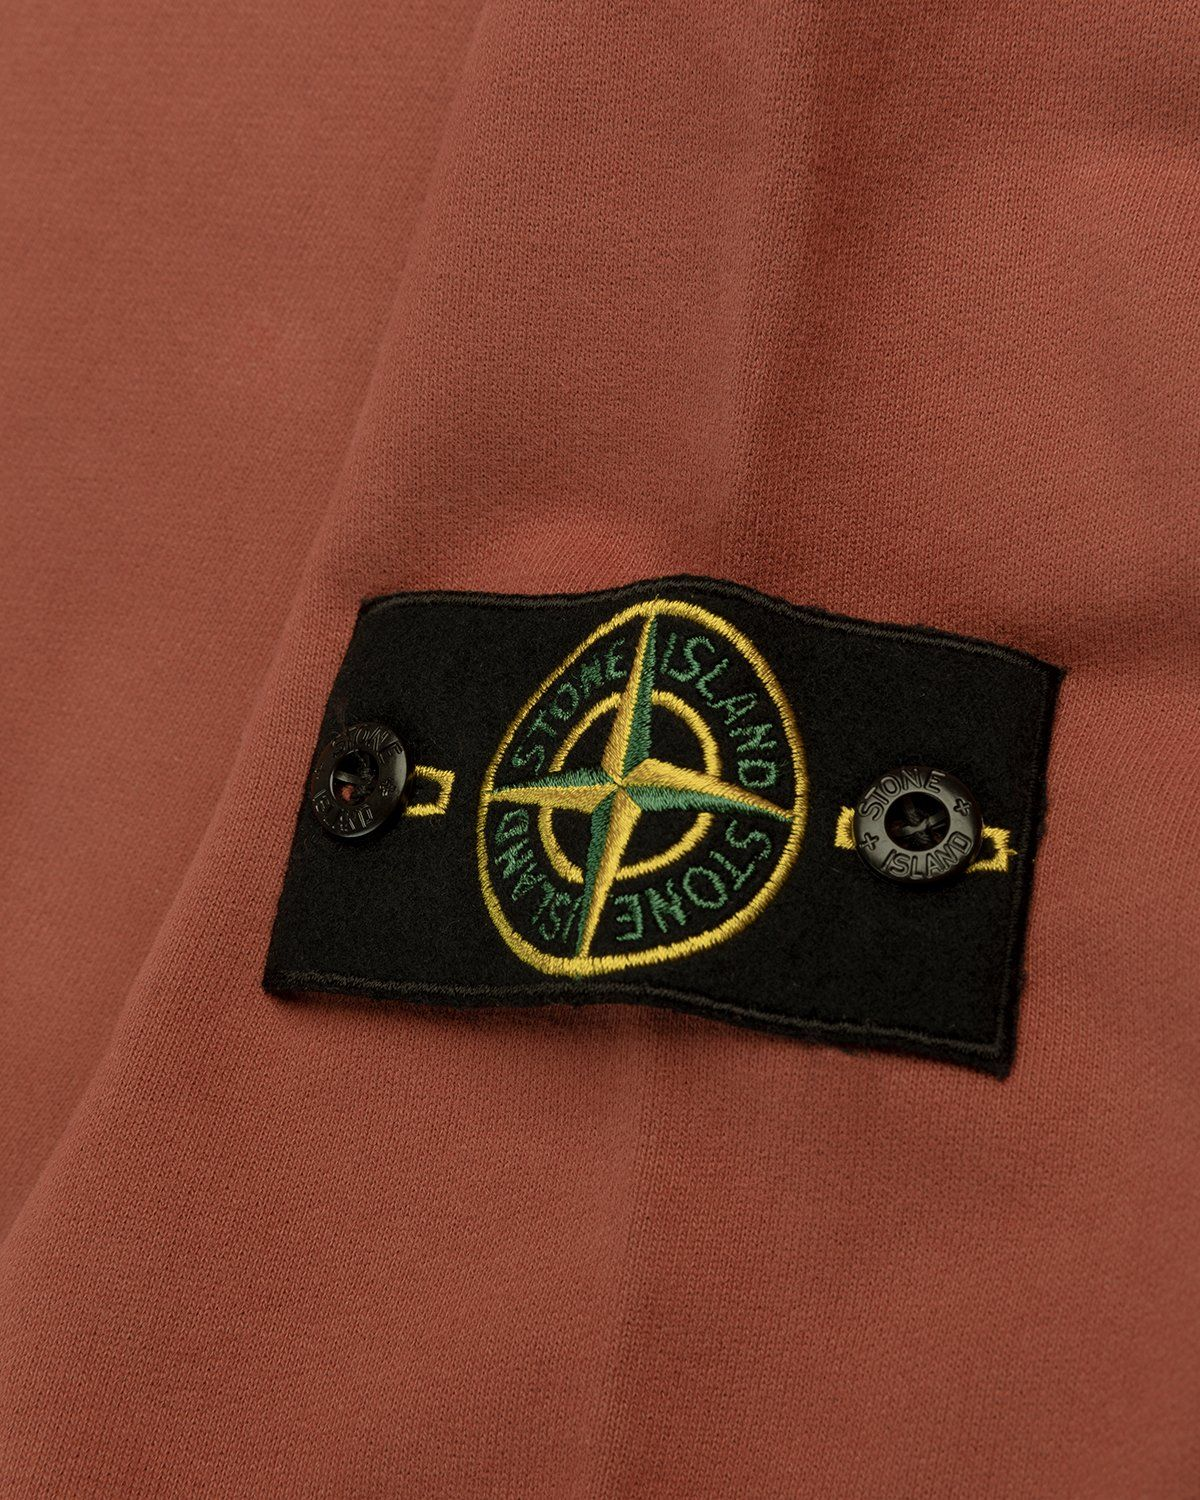 Stone Island – Dust Color Treatment Hoodie Brick Red - Image 4